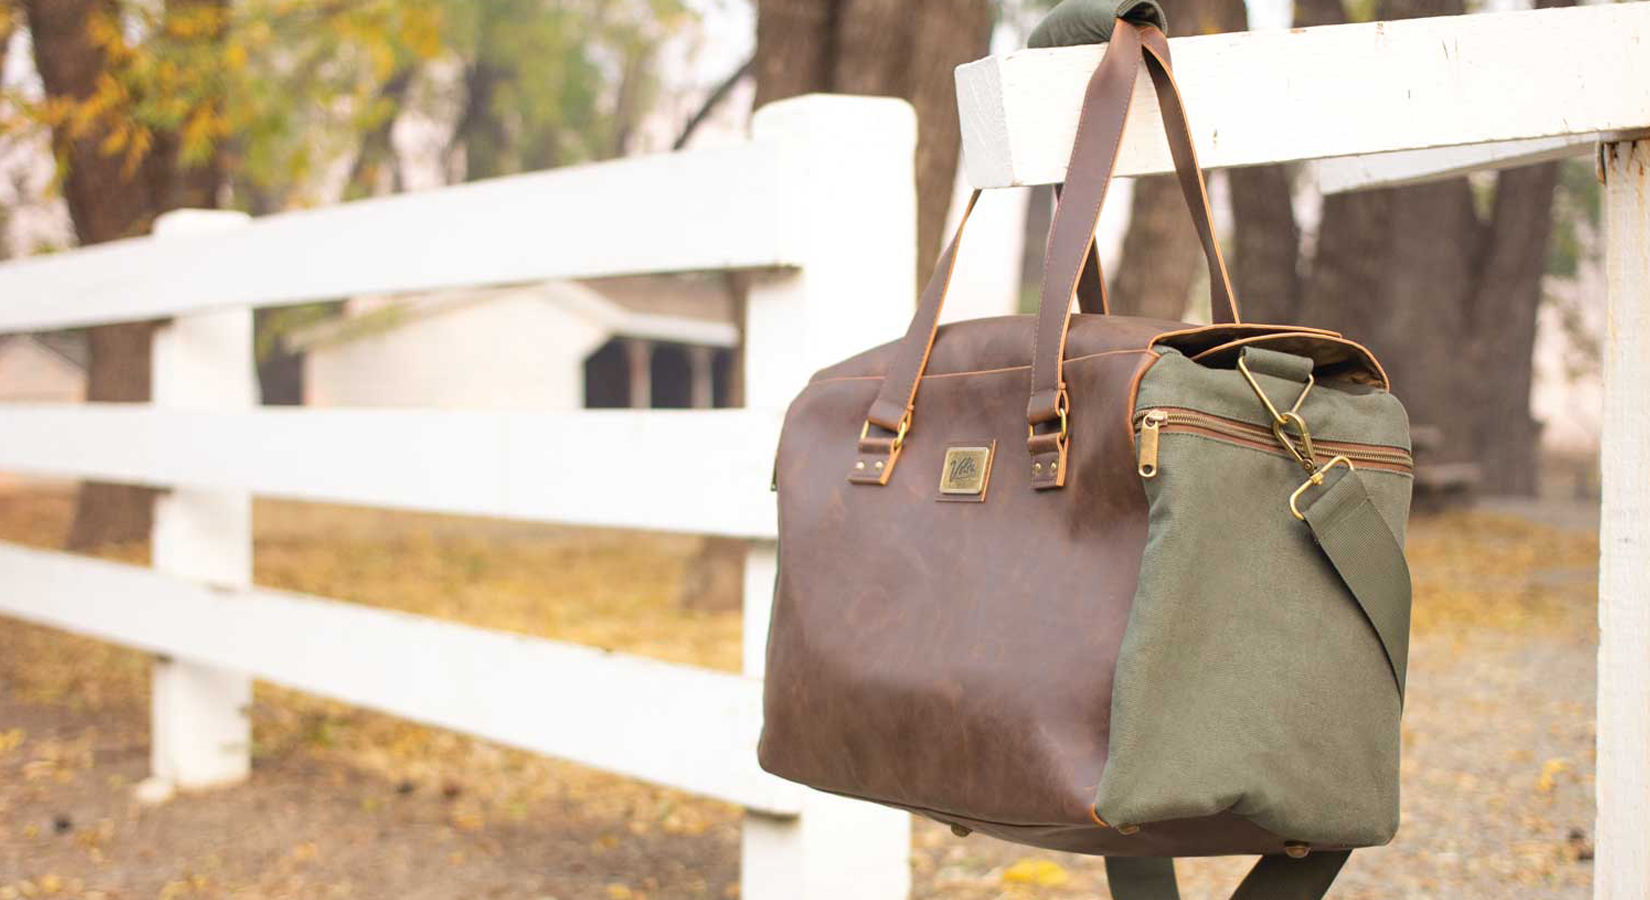 Introducing: The Danville Duffel™